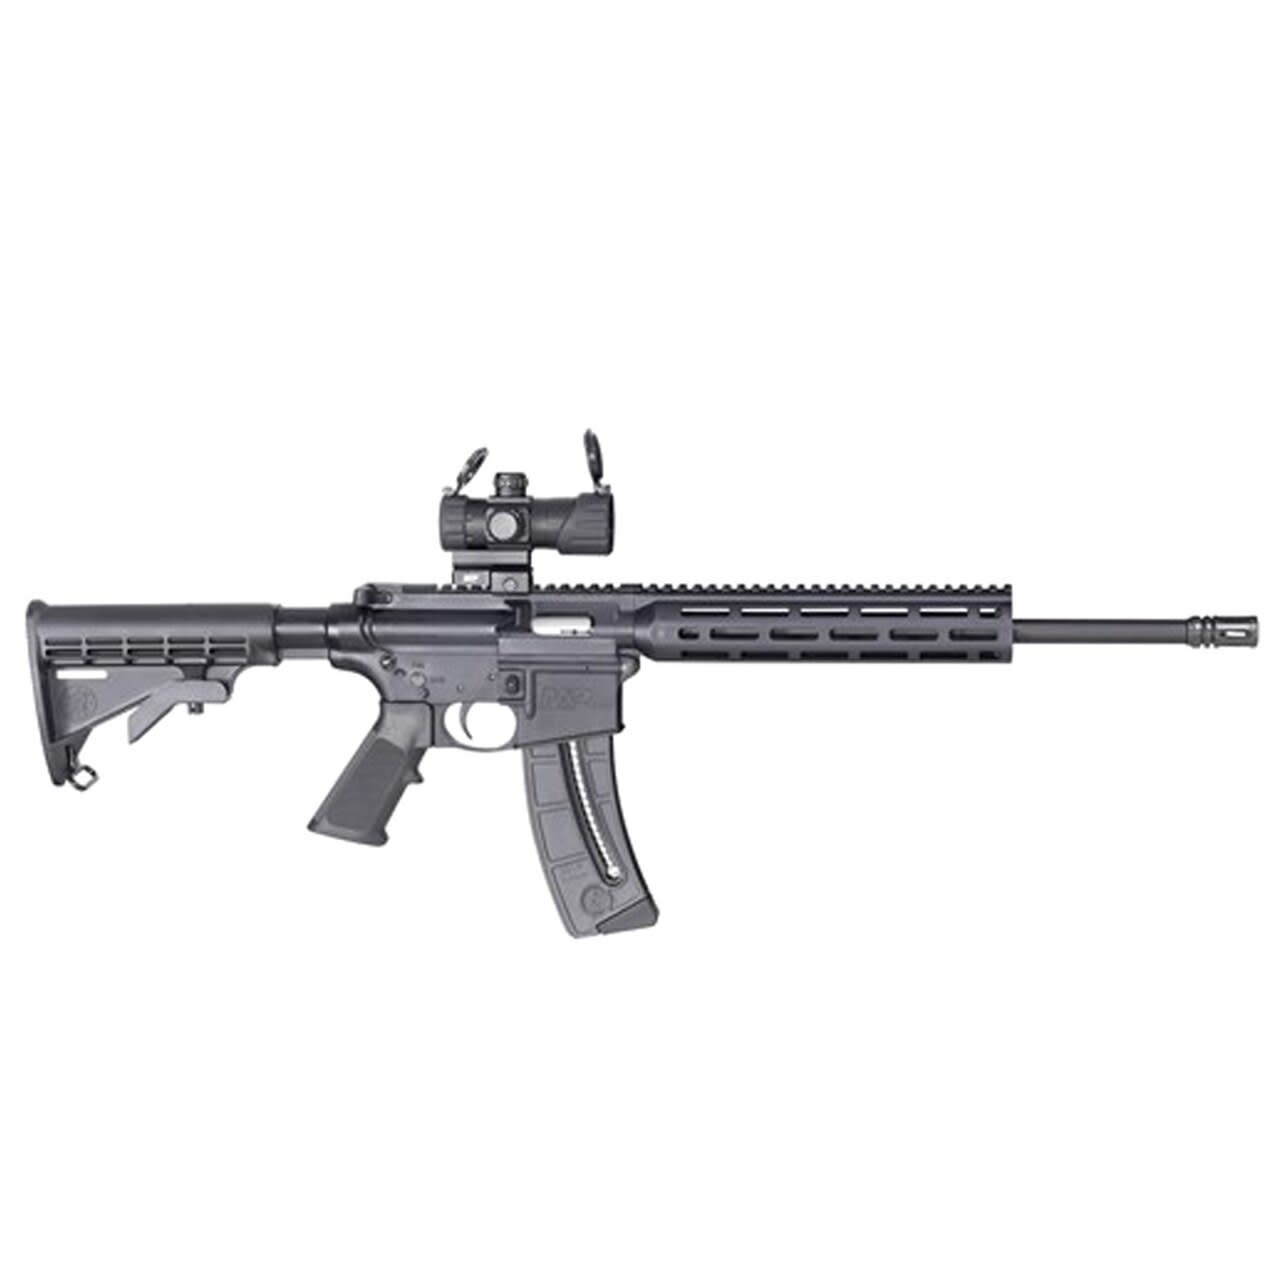 """Smith & Wesson Smith & Wesson M&P15-22 Sport 22LR 16.5"""" M-Lok 25rd"""